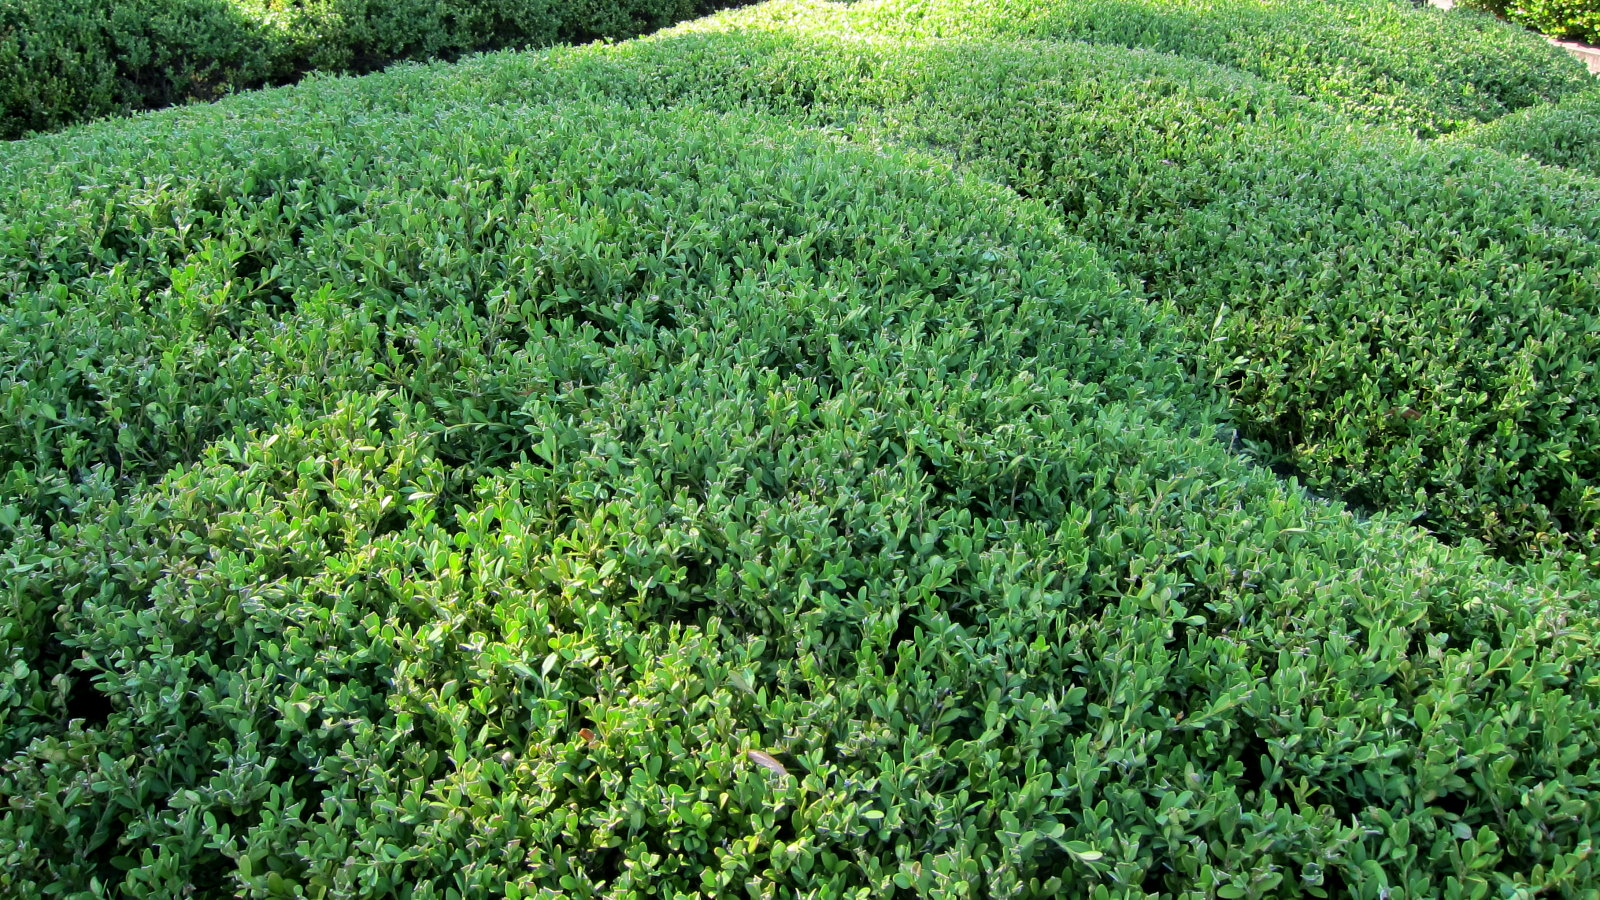 Buxus sinica var. insularis (Korean boxwood) pruned to form an undulating hedge; photo courtesy of Flickr cc/ cultivar413